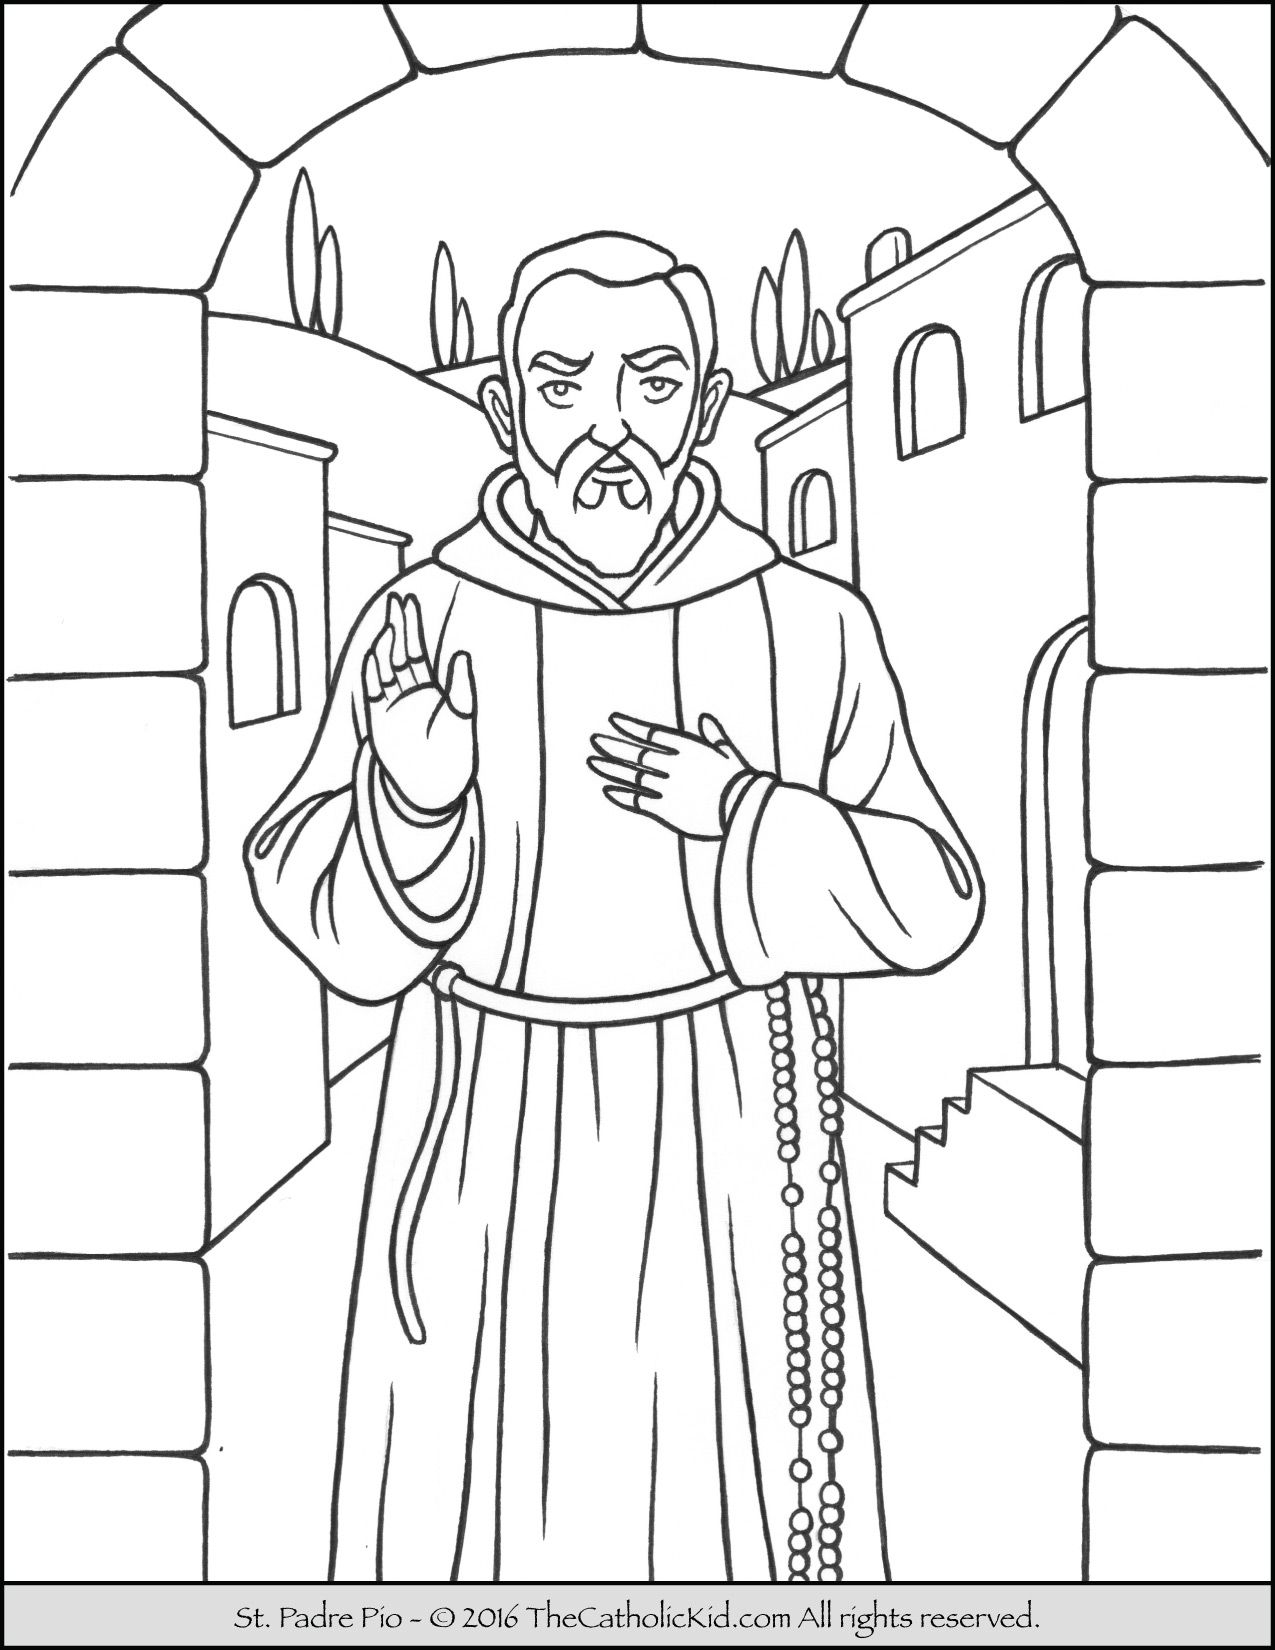 Saint Padre Pio Coloring Page - The Catholic Kid | Catholic Saints ...